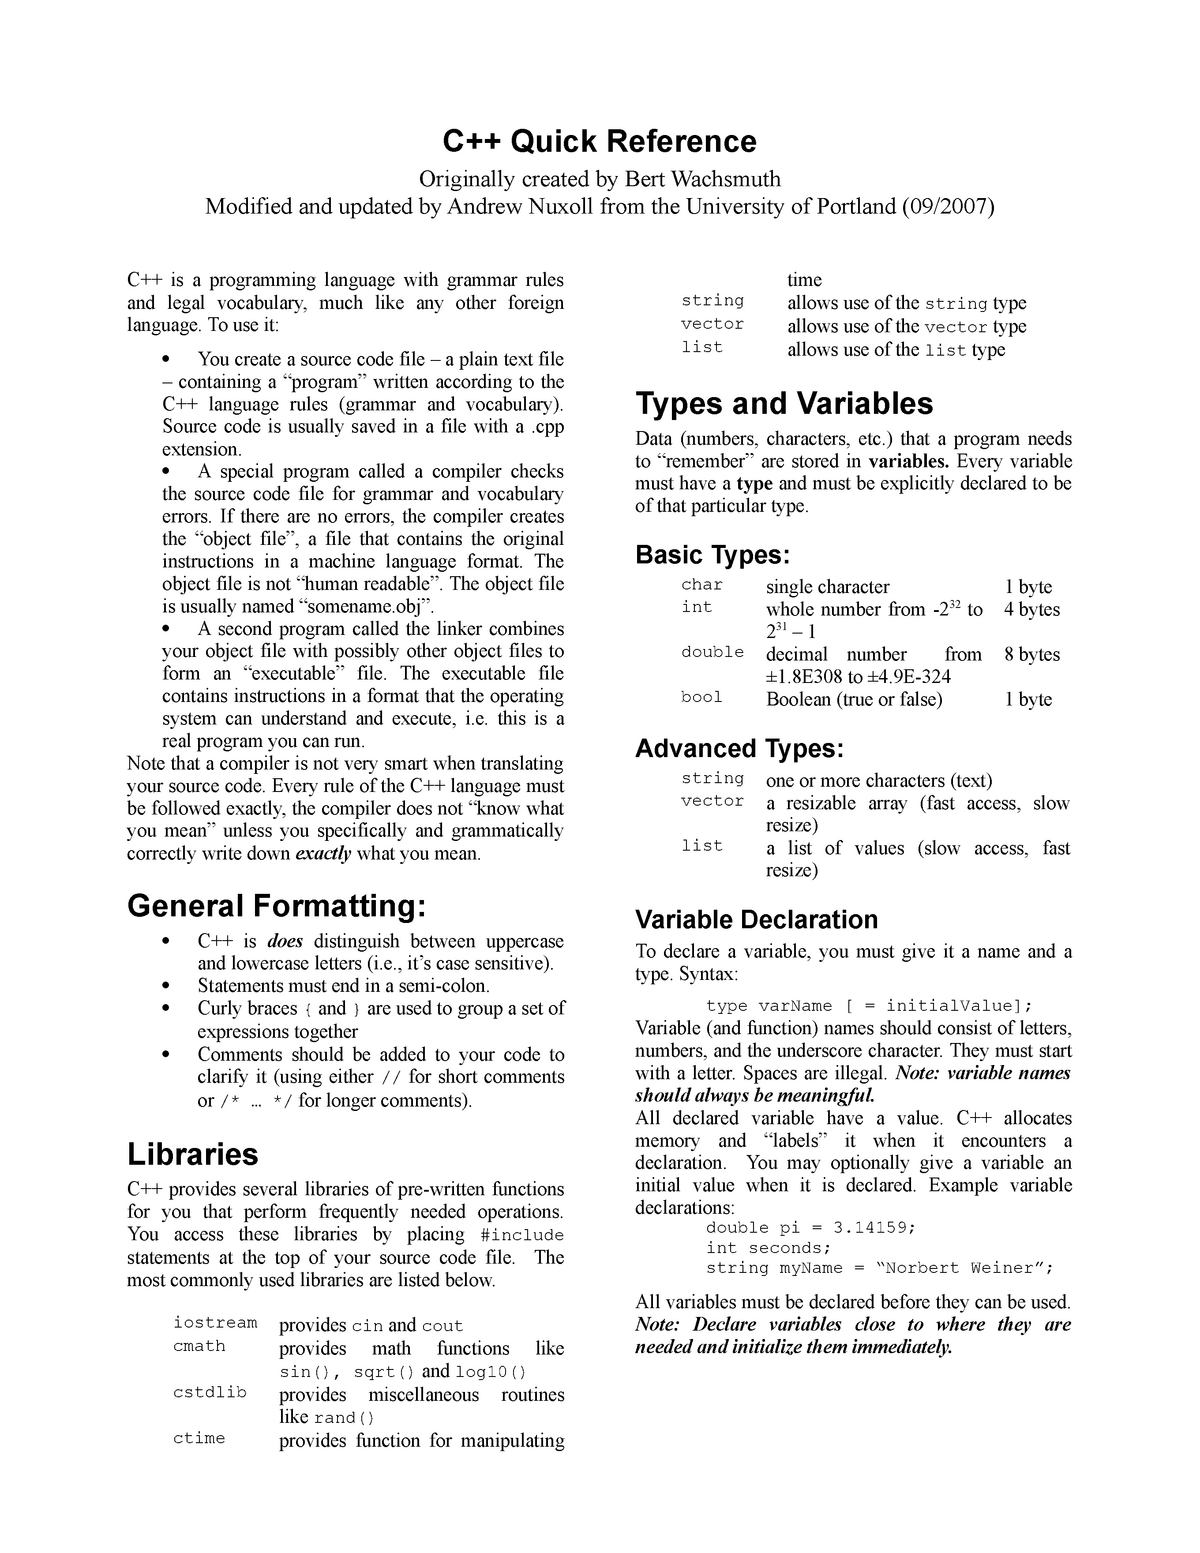 C++-Overivew - CIS 5900: Computer Information Systems